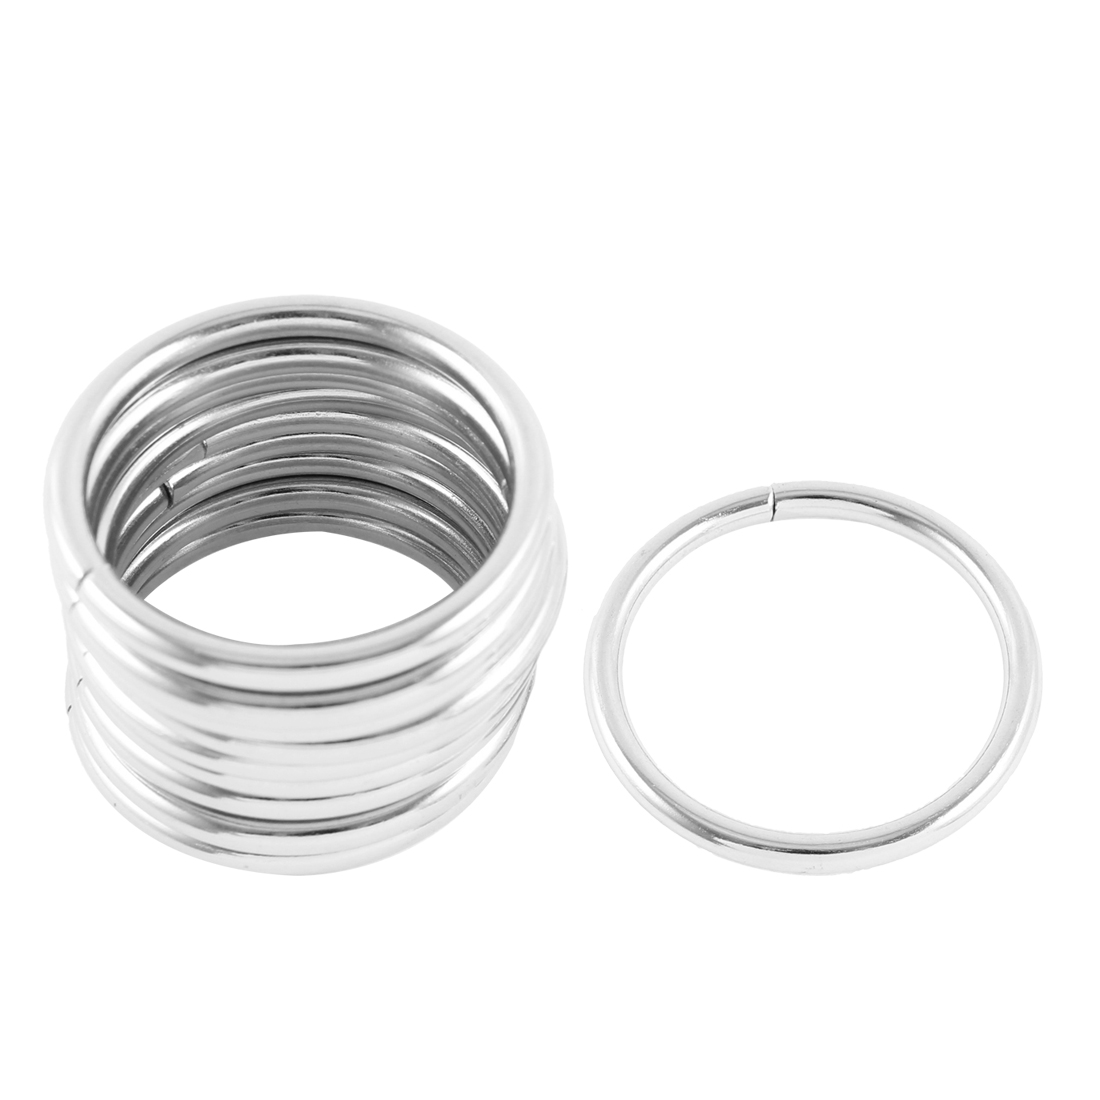 """10 Pcs Silver Tone Metal O Rings Craft 2"""" for Webbing Strapping Belt"""